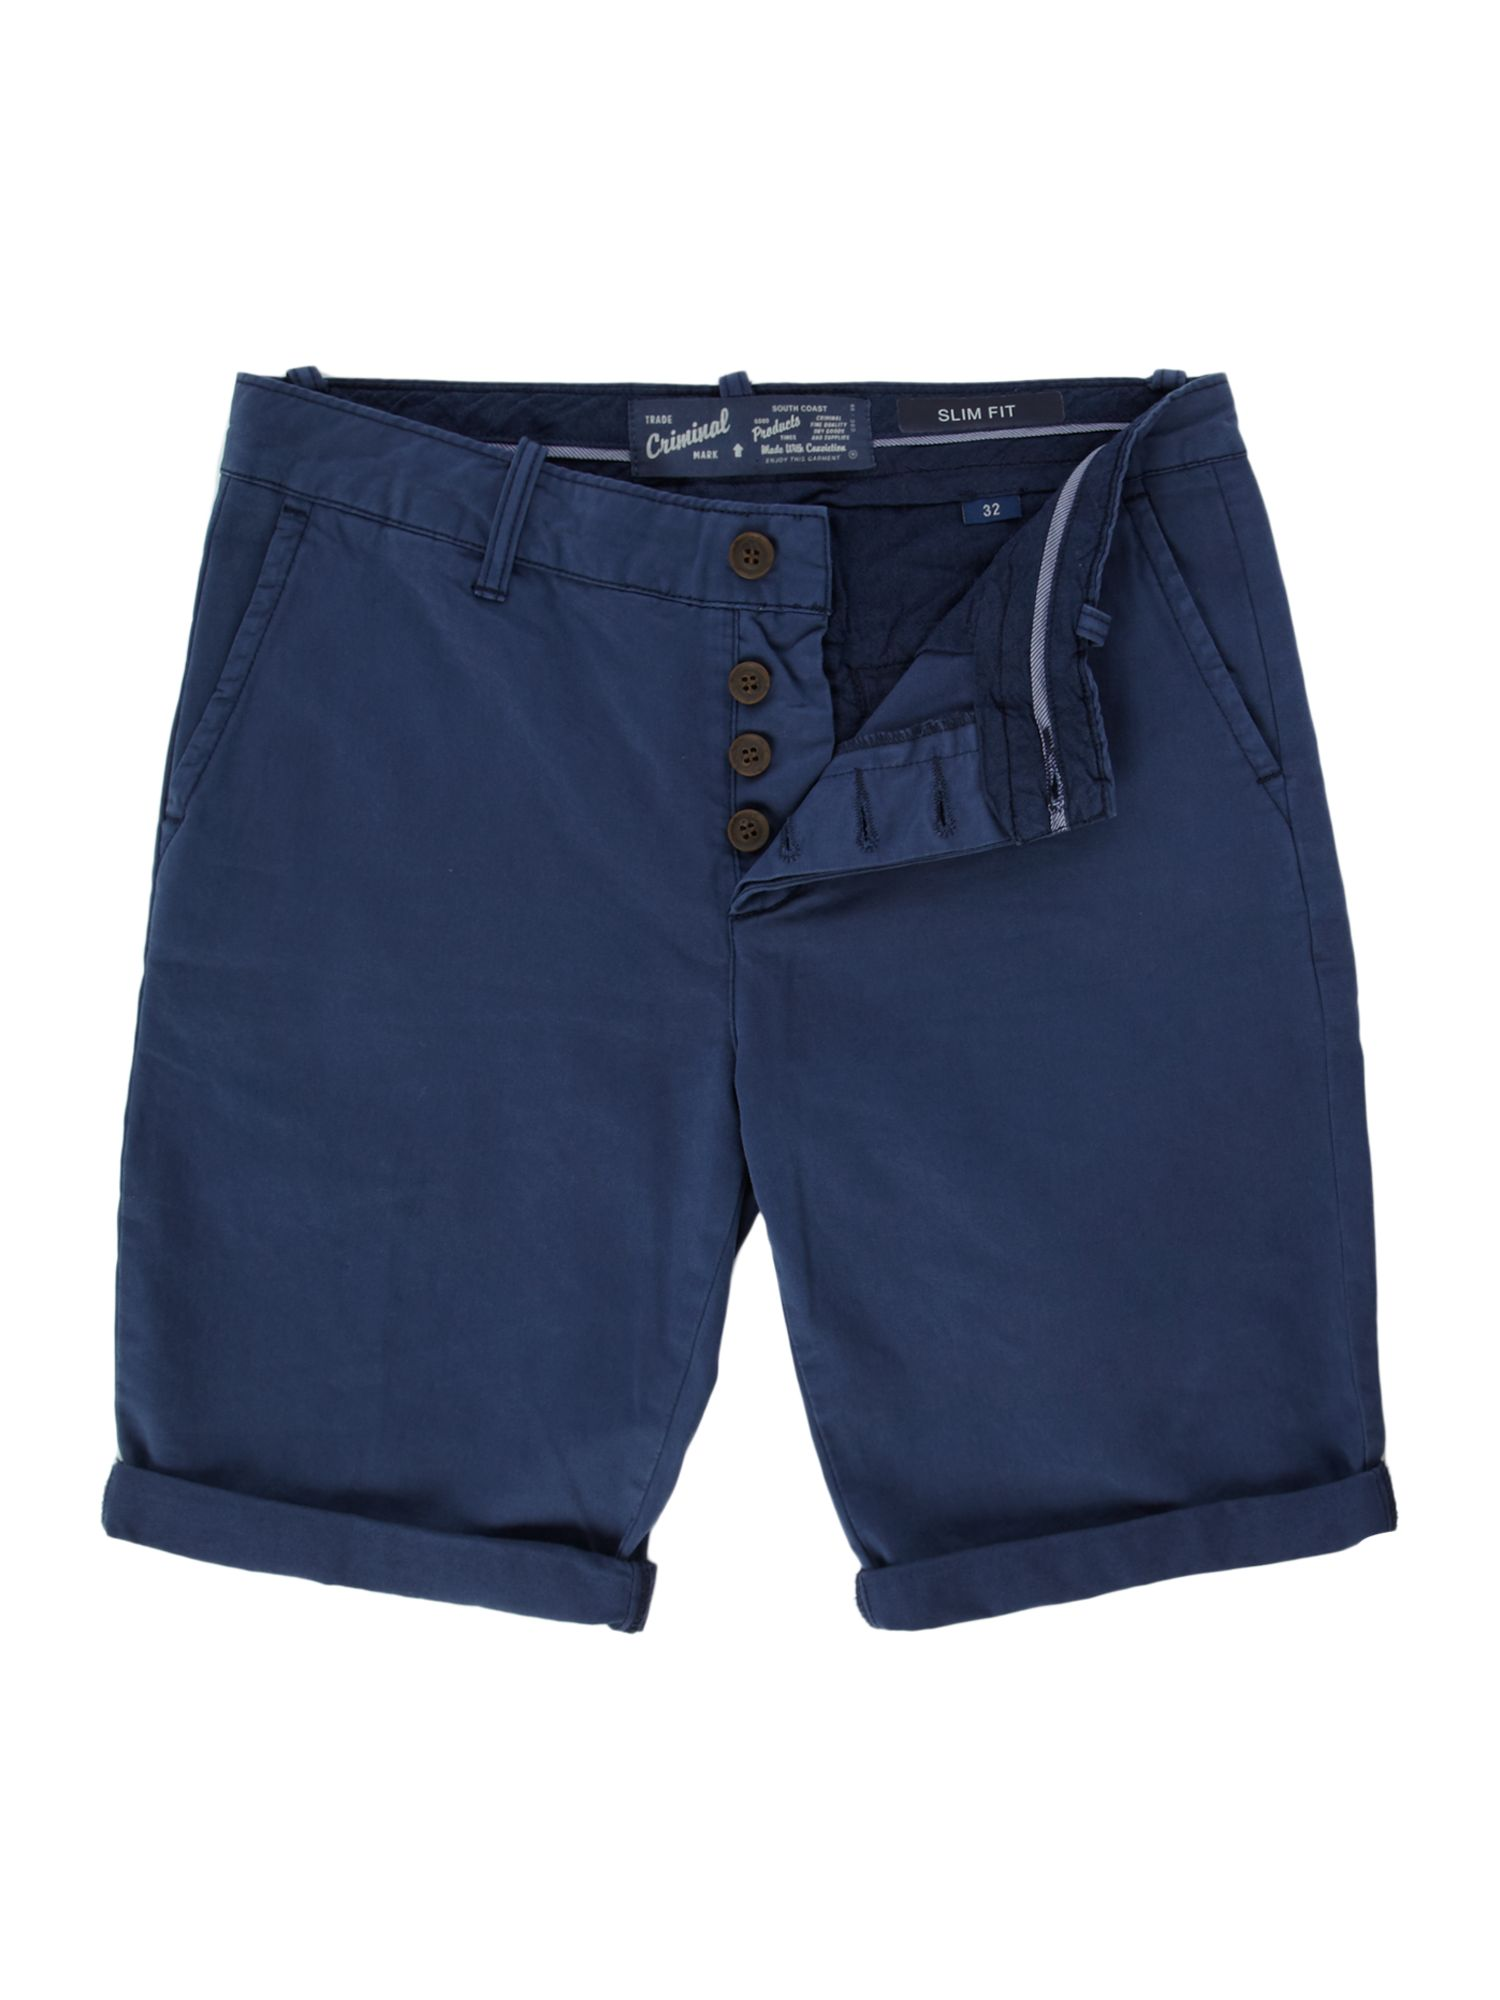 Chino slim fit short